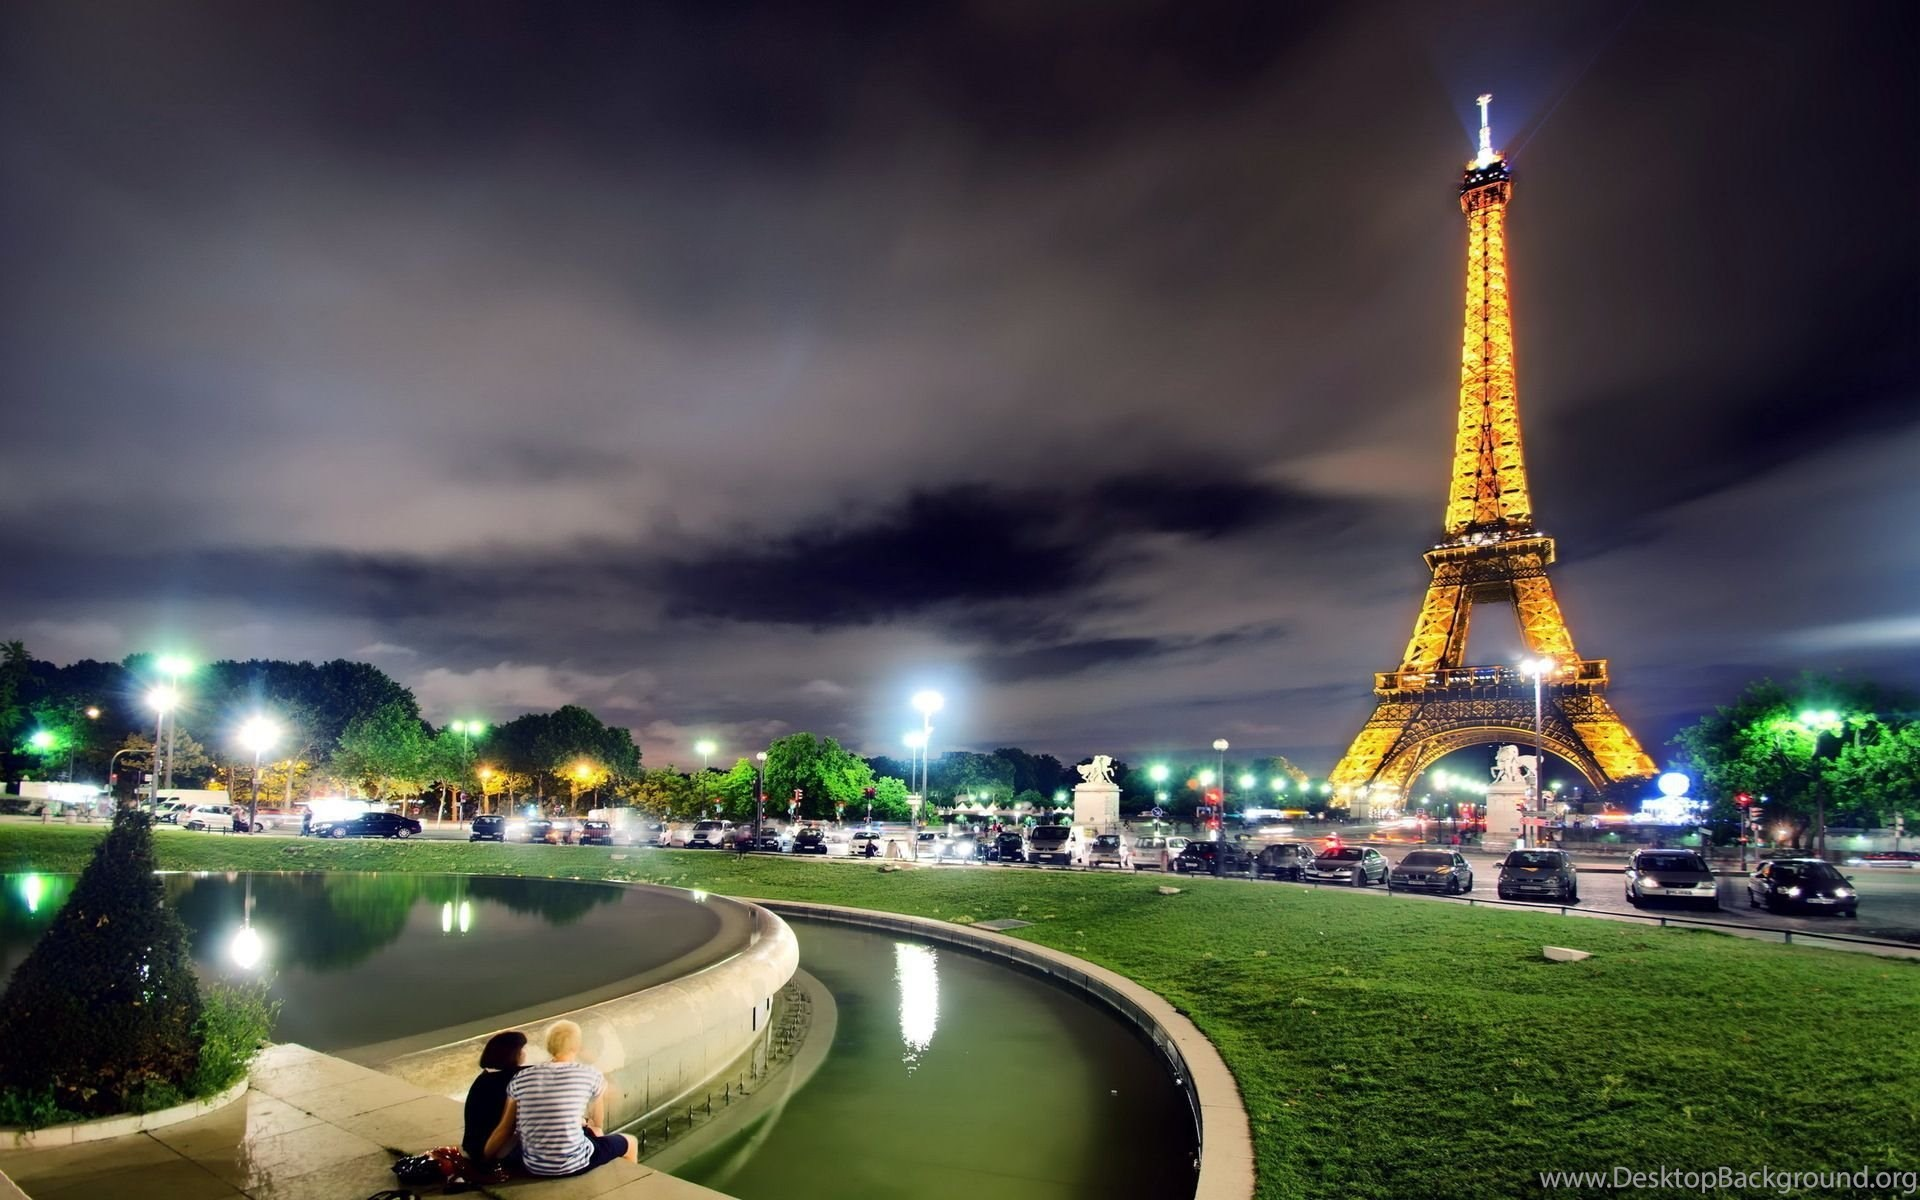 Couple At Eiffel Tower Wallpapers Travel Hd Wallpapers Desktop